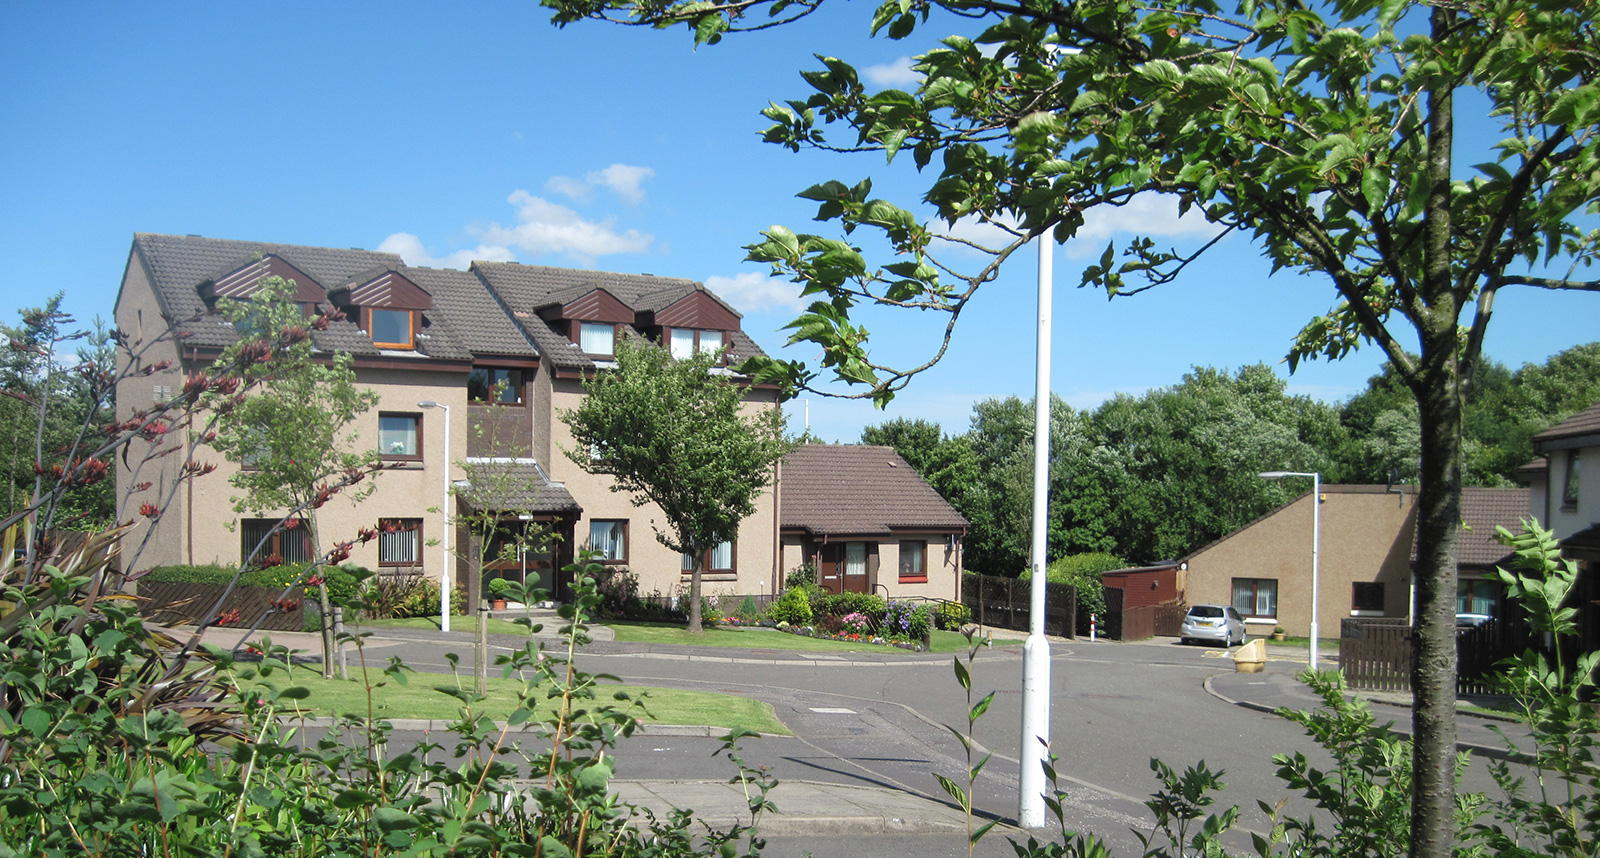 Glenrothes Housing